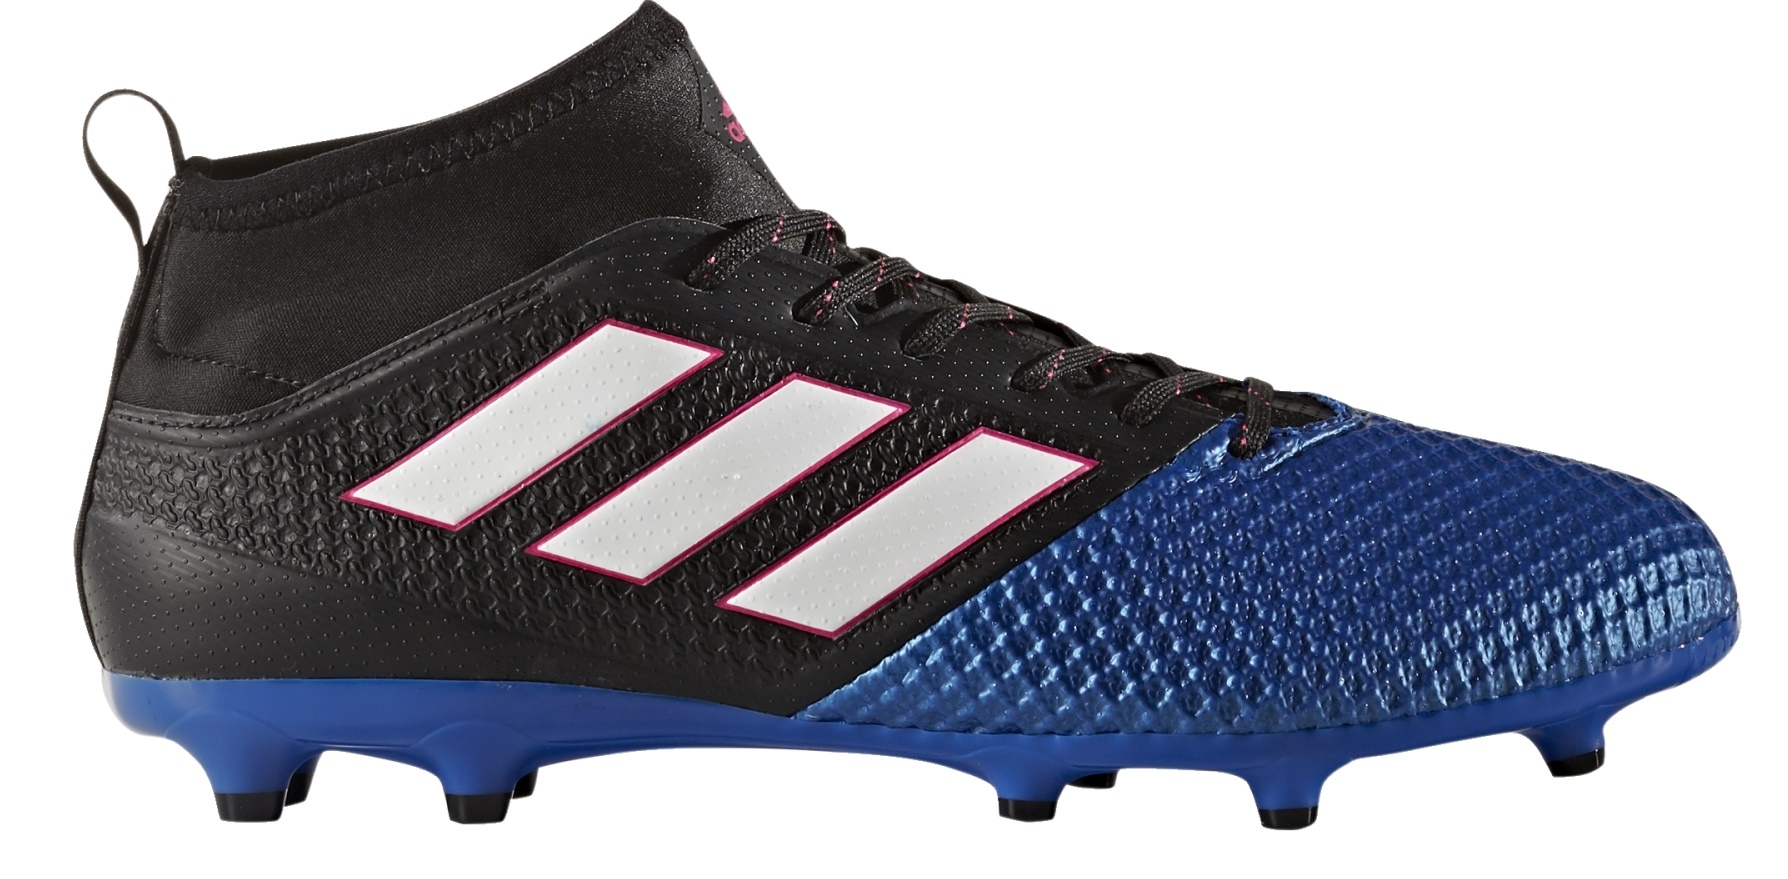 Adidas Ace 17 Gialle